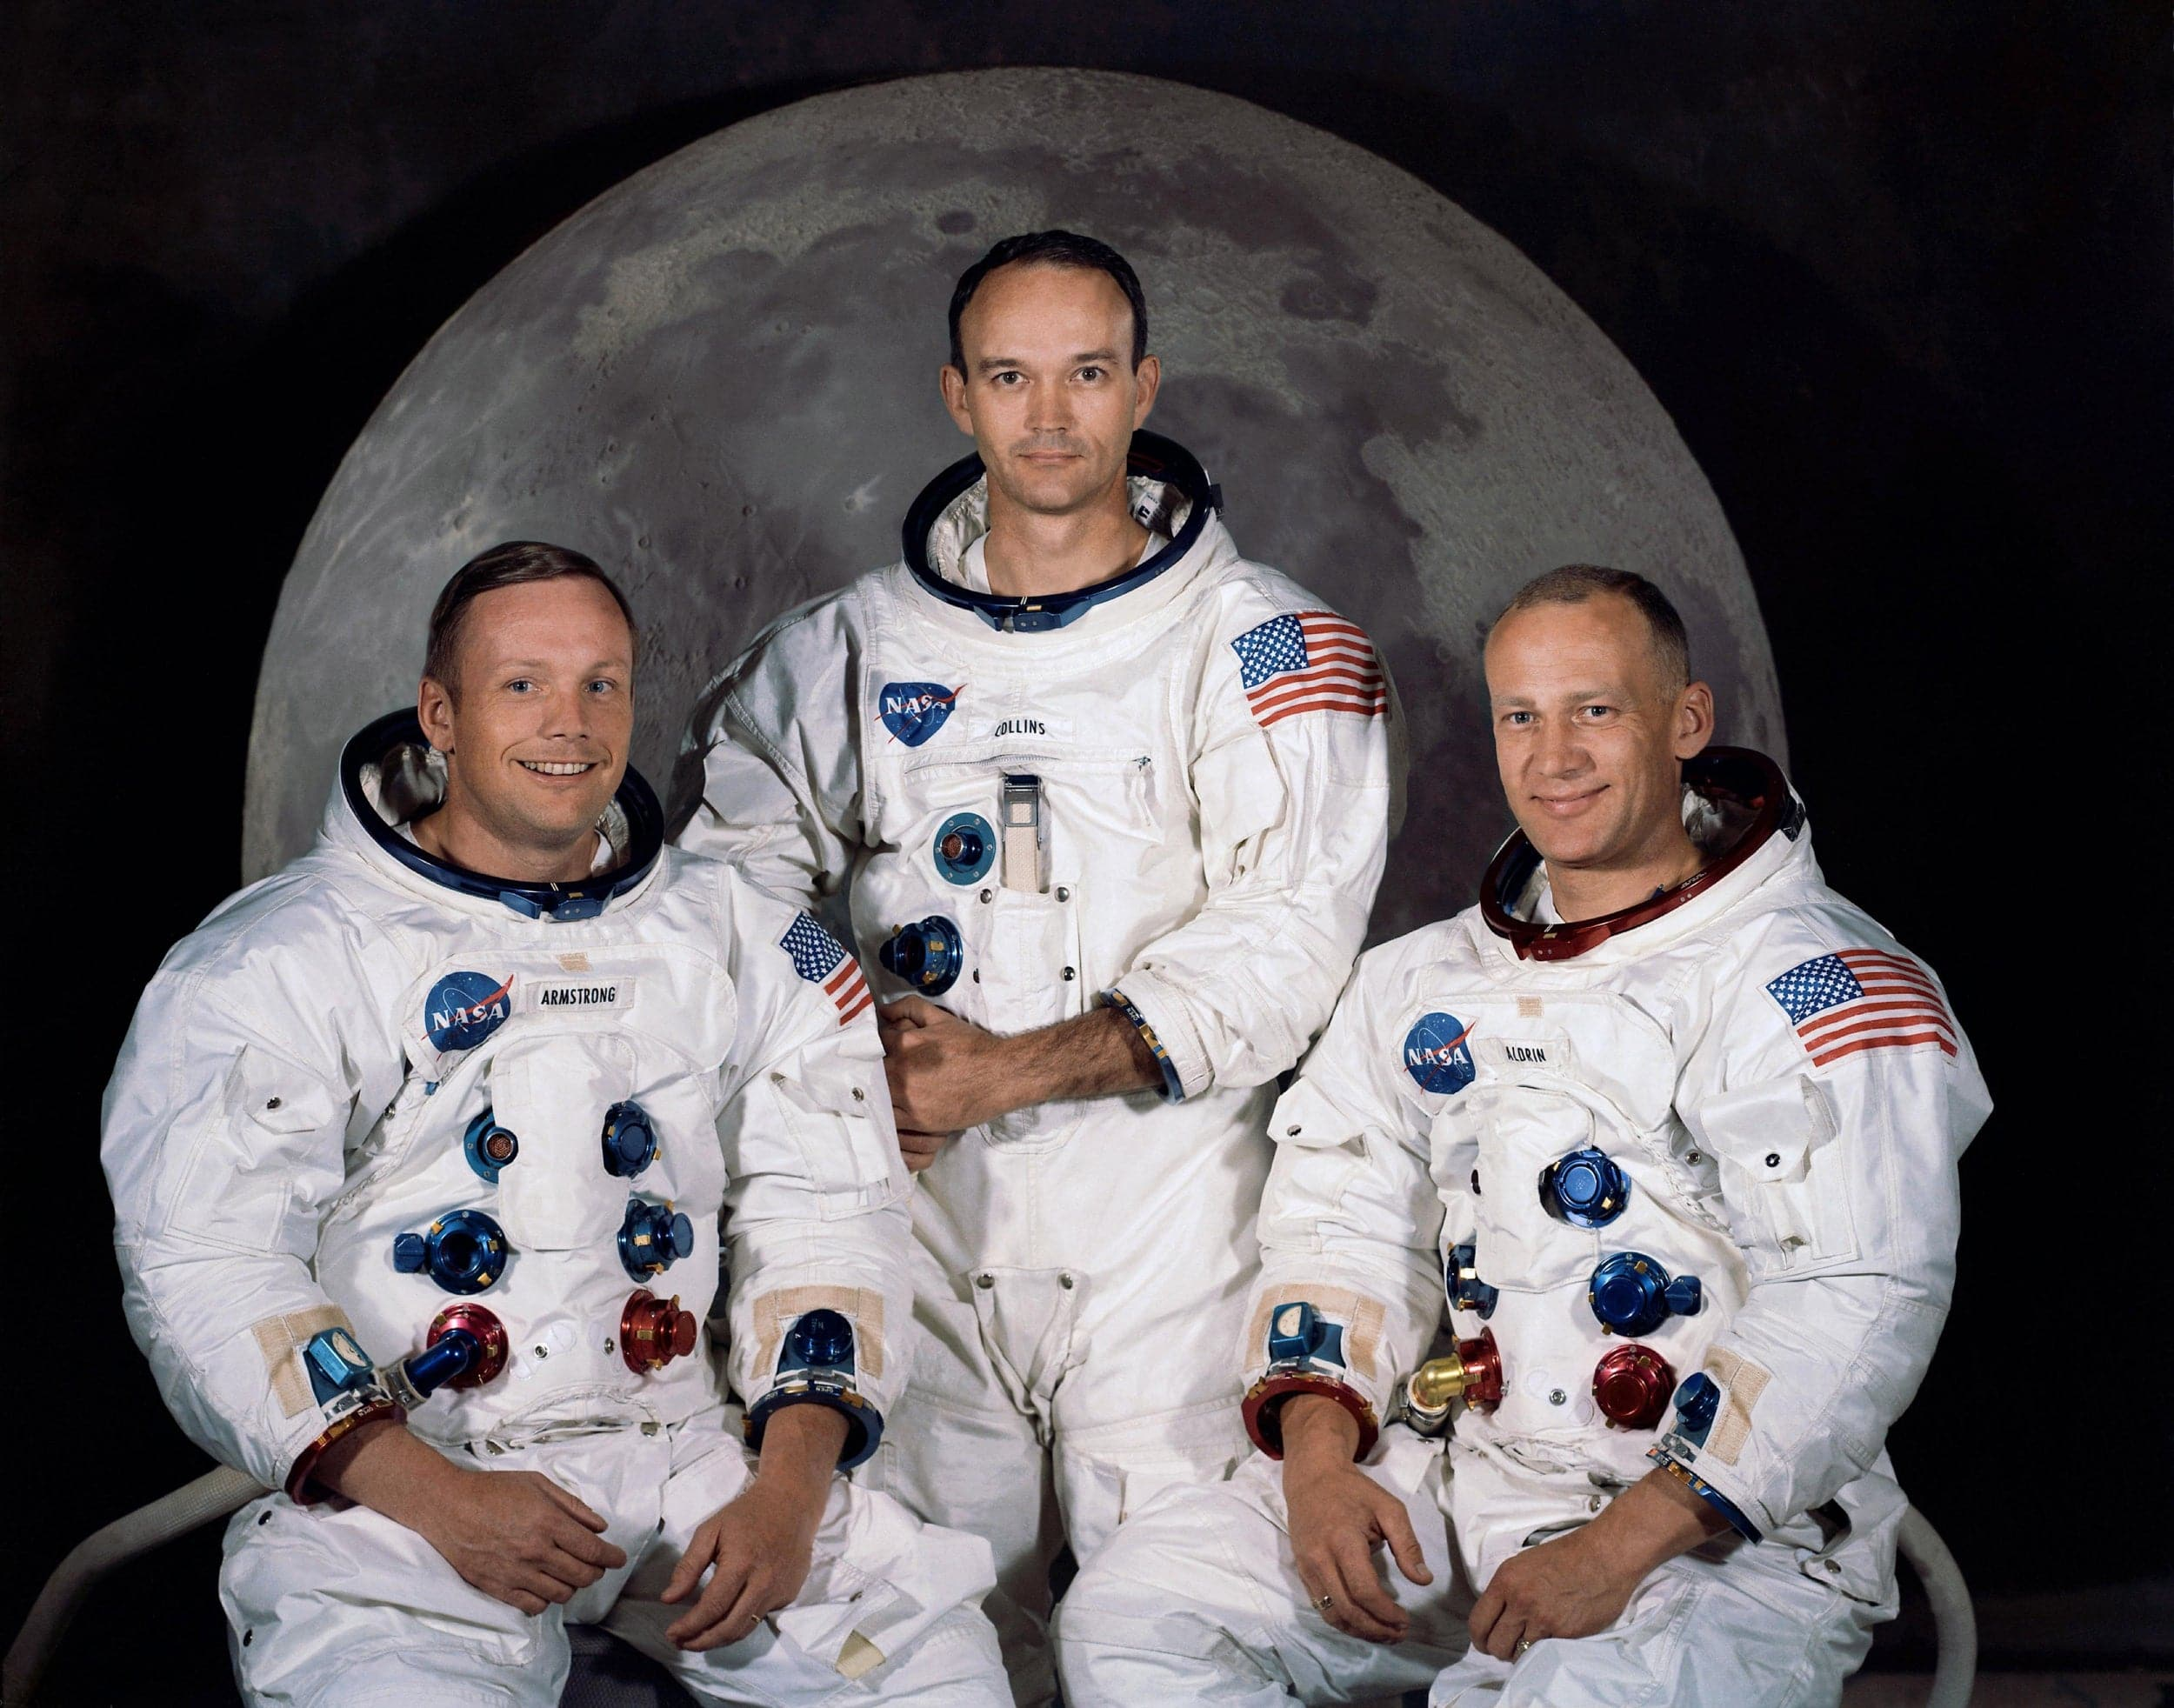 The three astronauts of Apollo 11